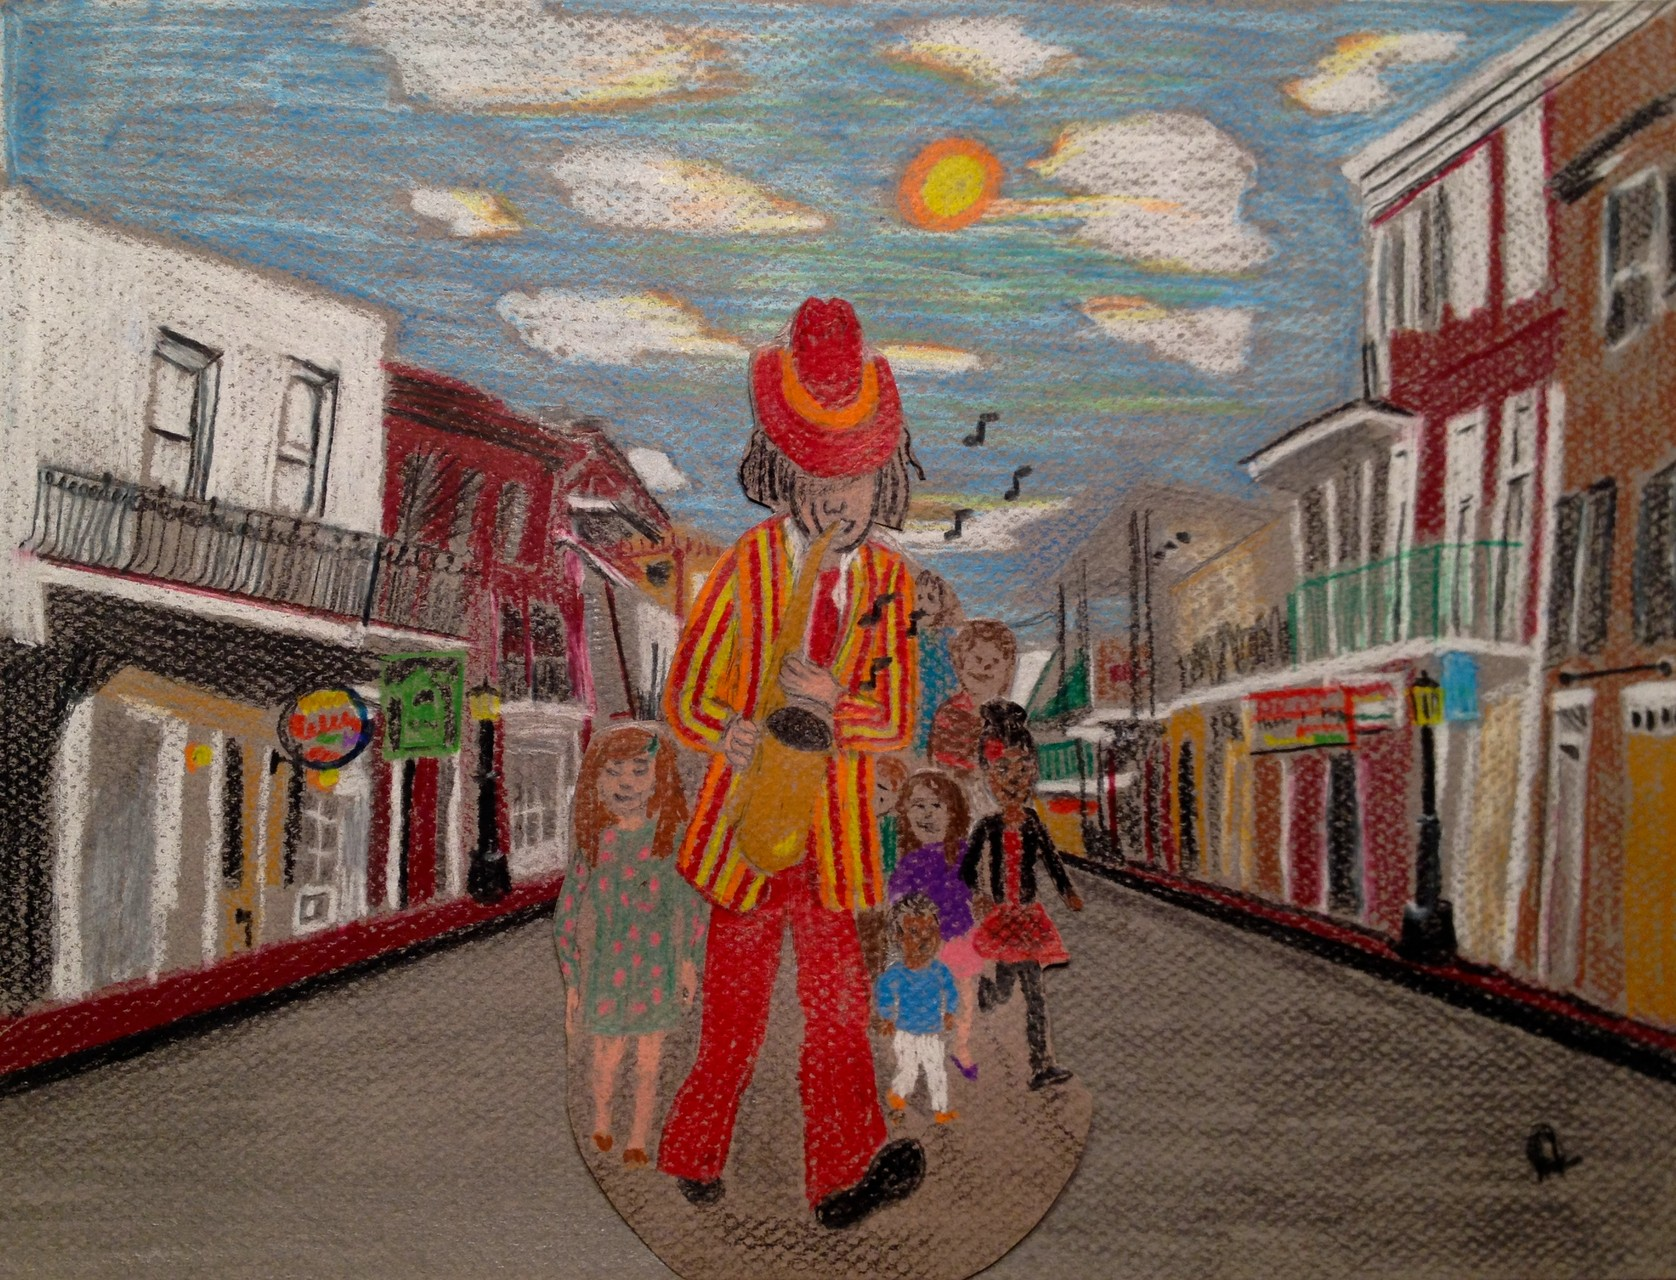 Another Illustration of the Pied Piper leading the children out of the town. Illustrated with colored pencils on Canson Mi-Teintes paper. 12/14